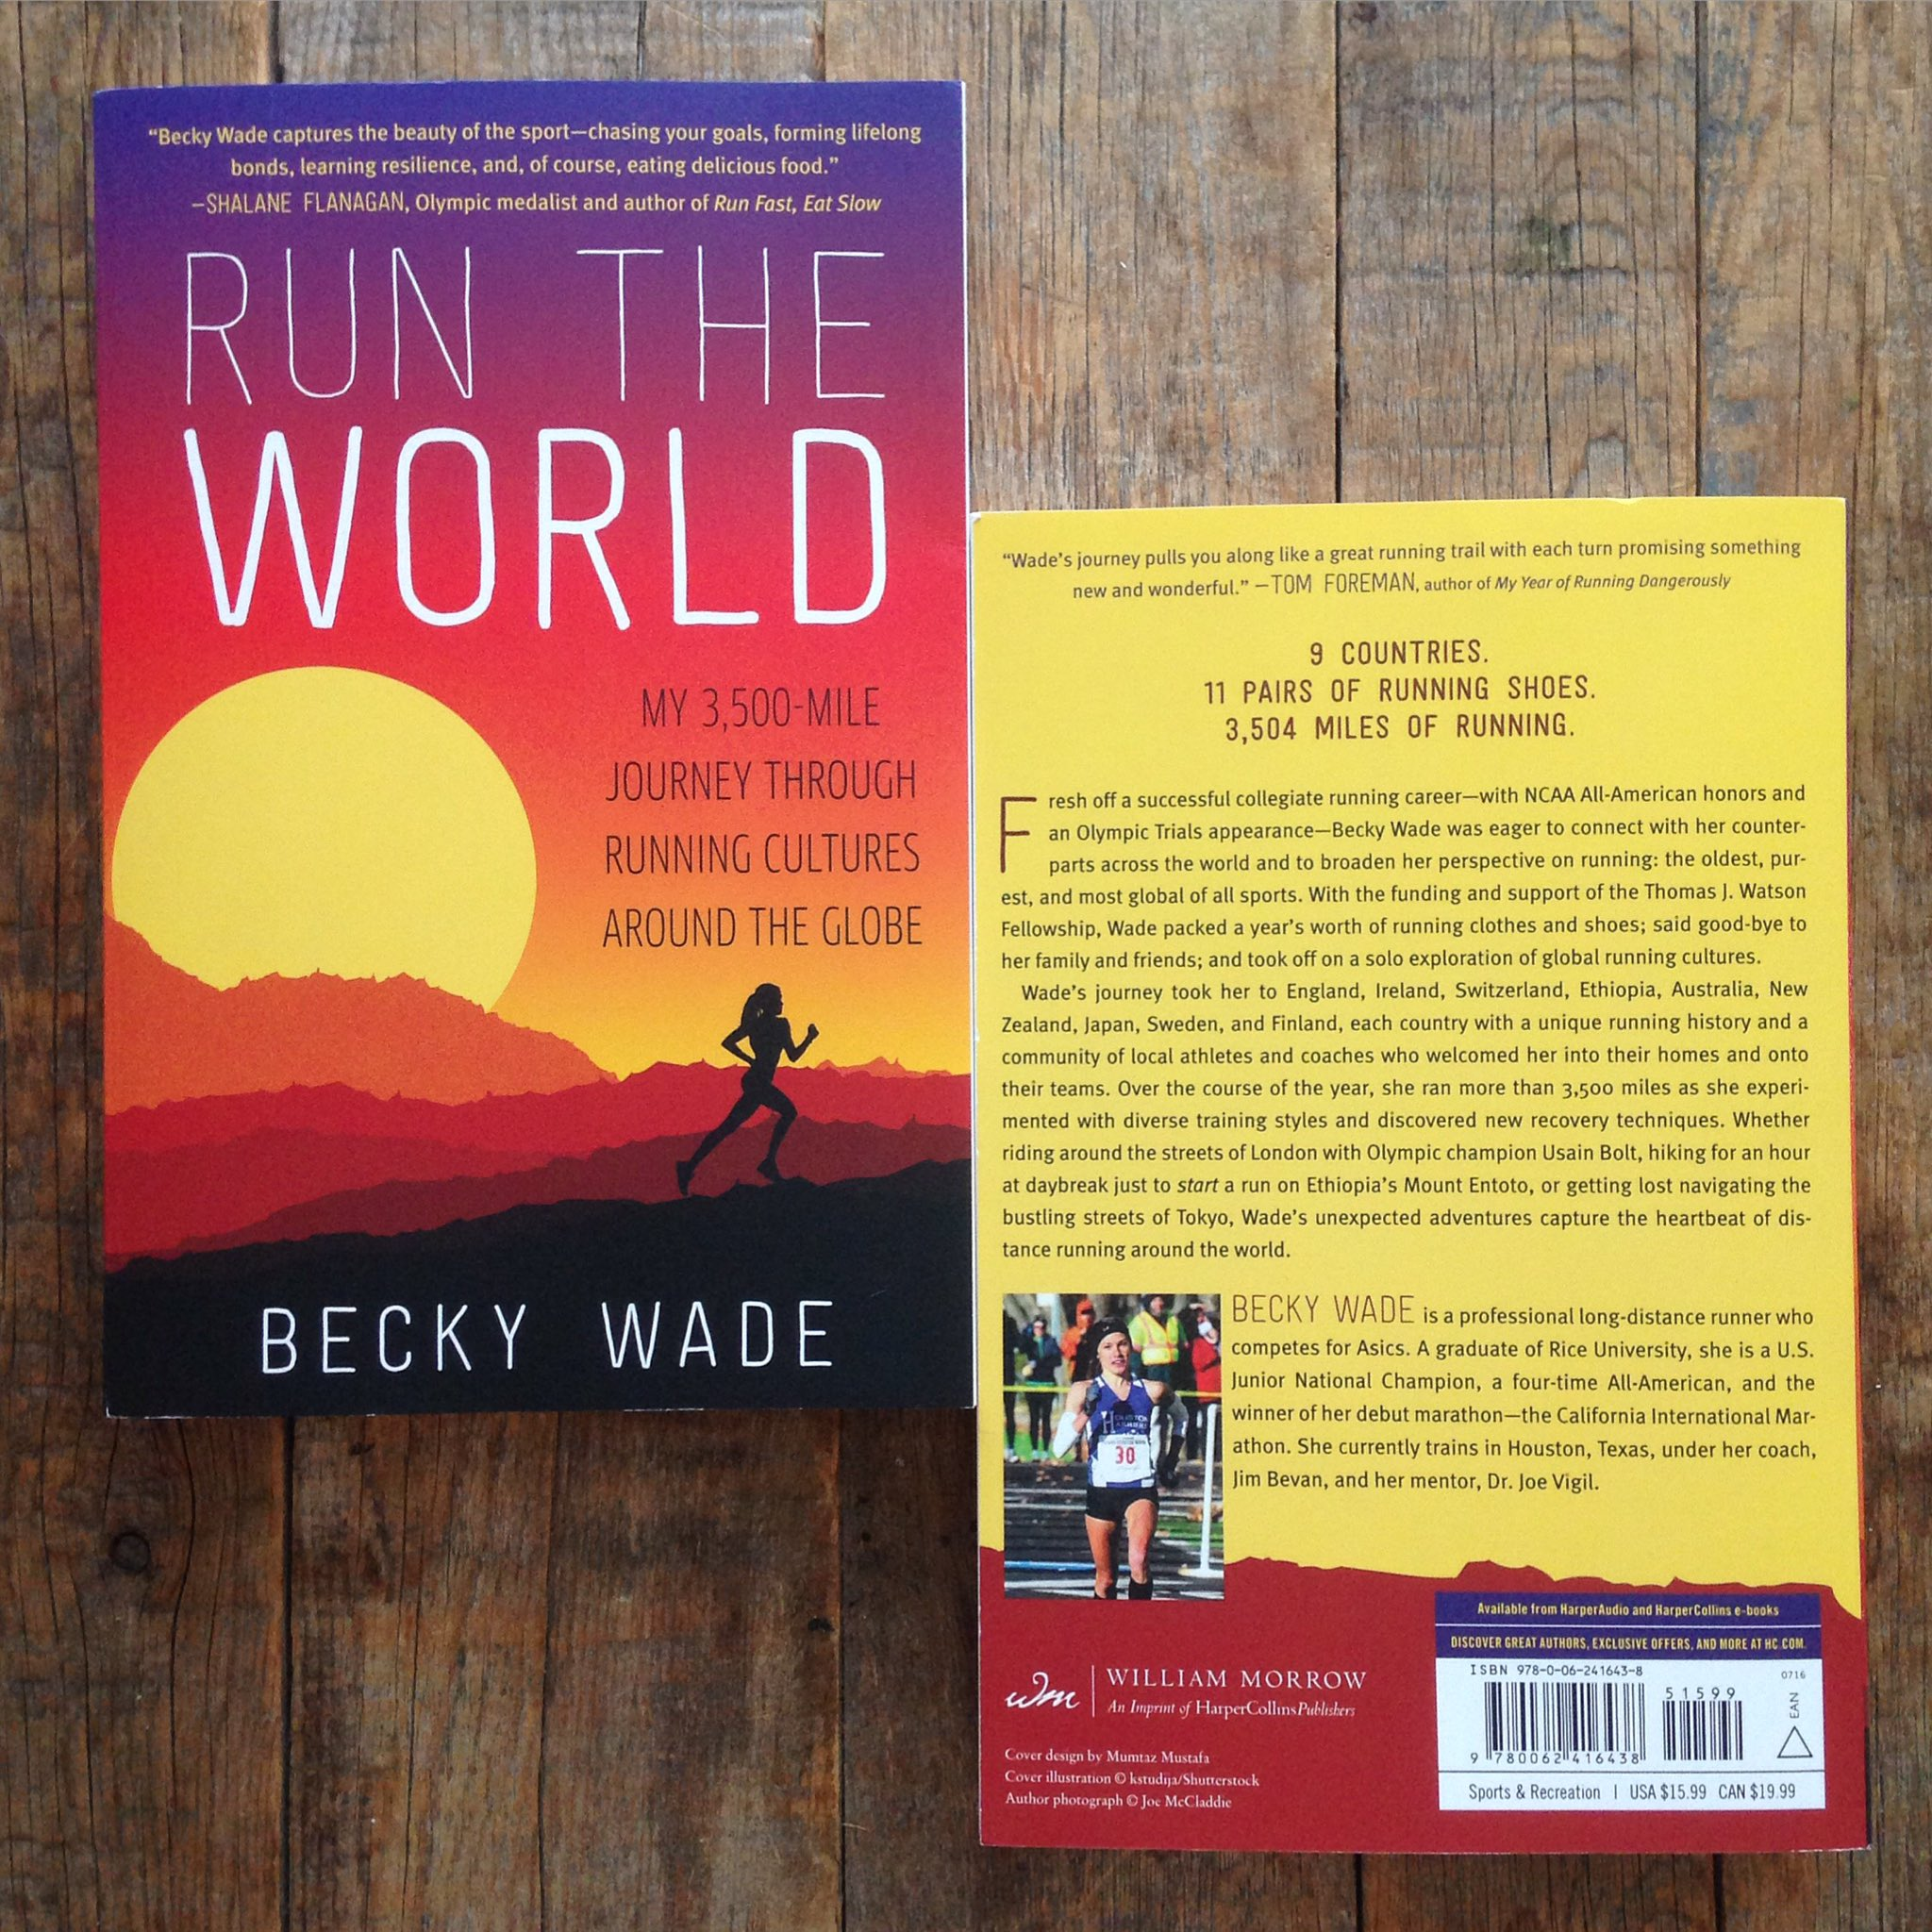 Becky wade on twitter runtheworld hot off the press on sale becky wade on twitter runtheworld hot off the press on sale july 5 preorder at httpstatecs8kr2l or on amazon fandeluxe Gallery